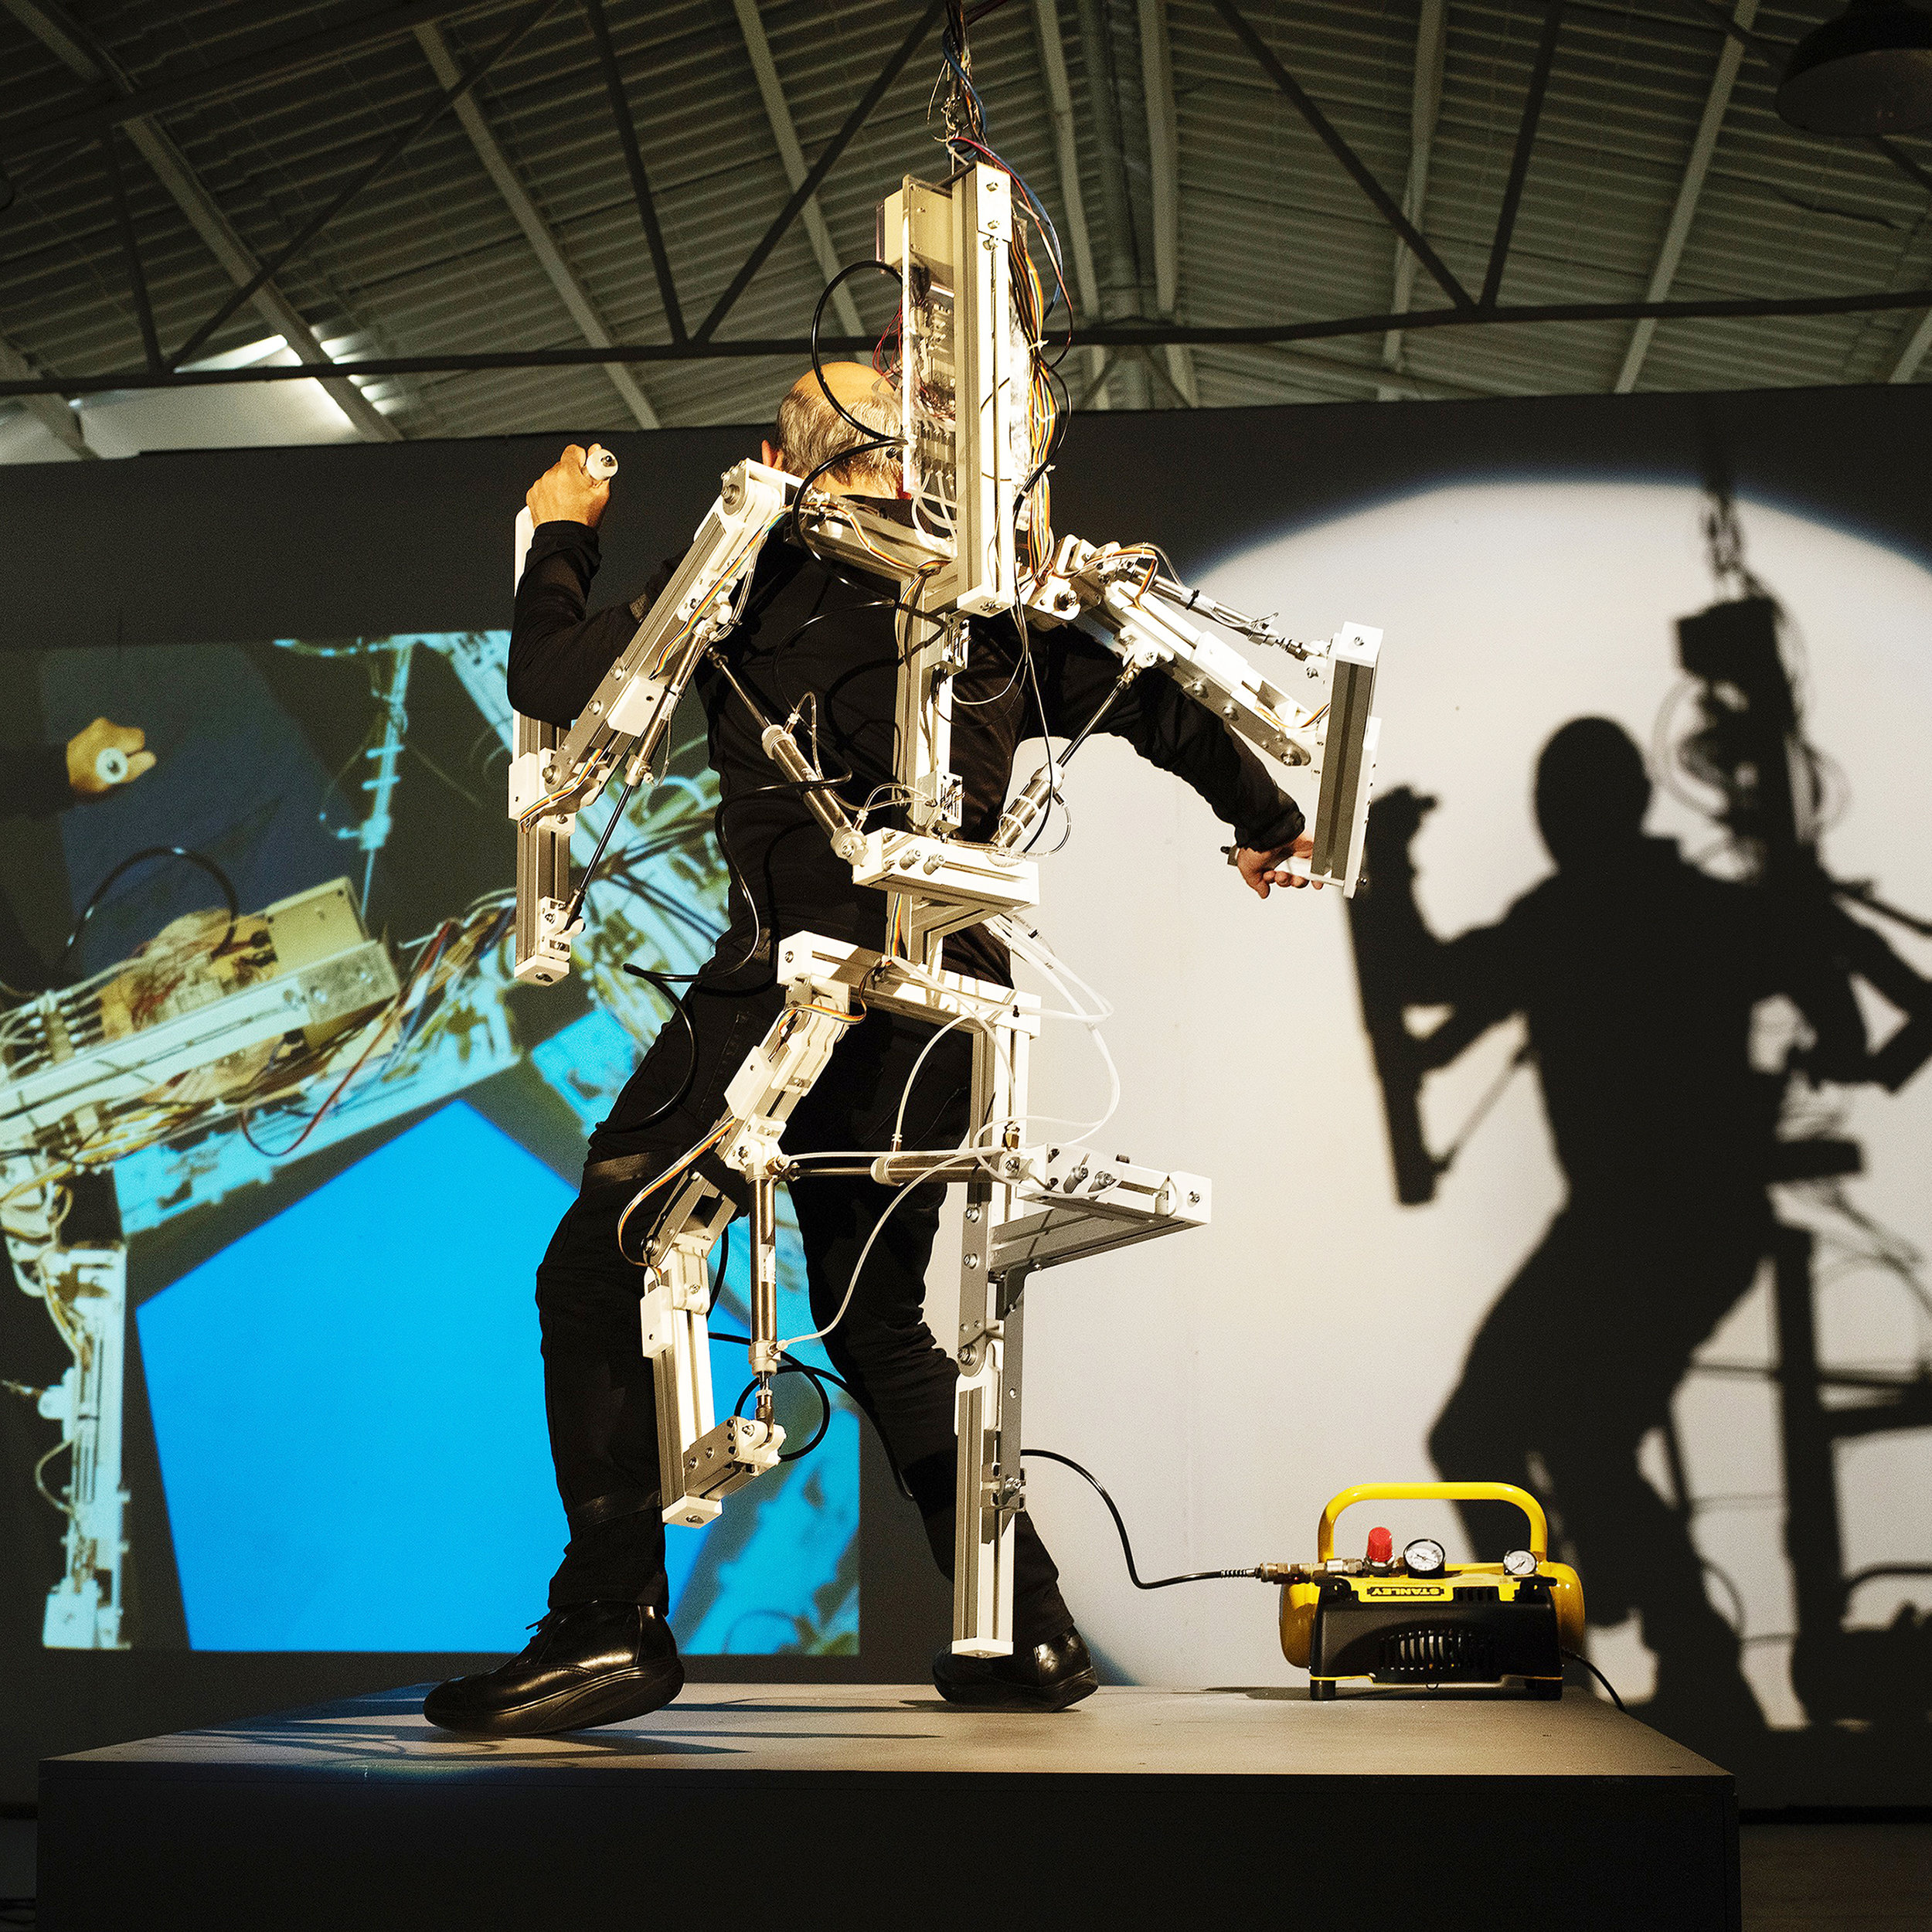 Stelarc's  StickMan  will be exhibiting May 30-June 21 at TellTale Productions